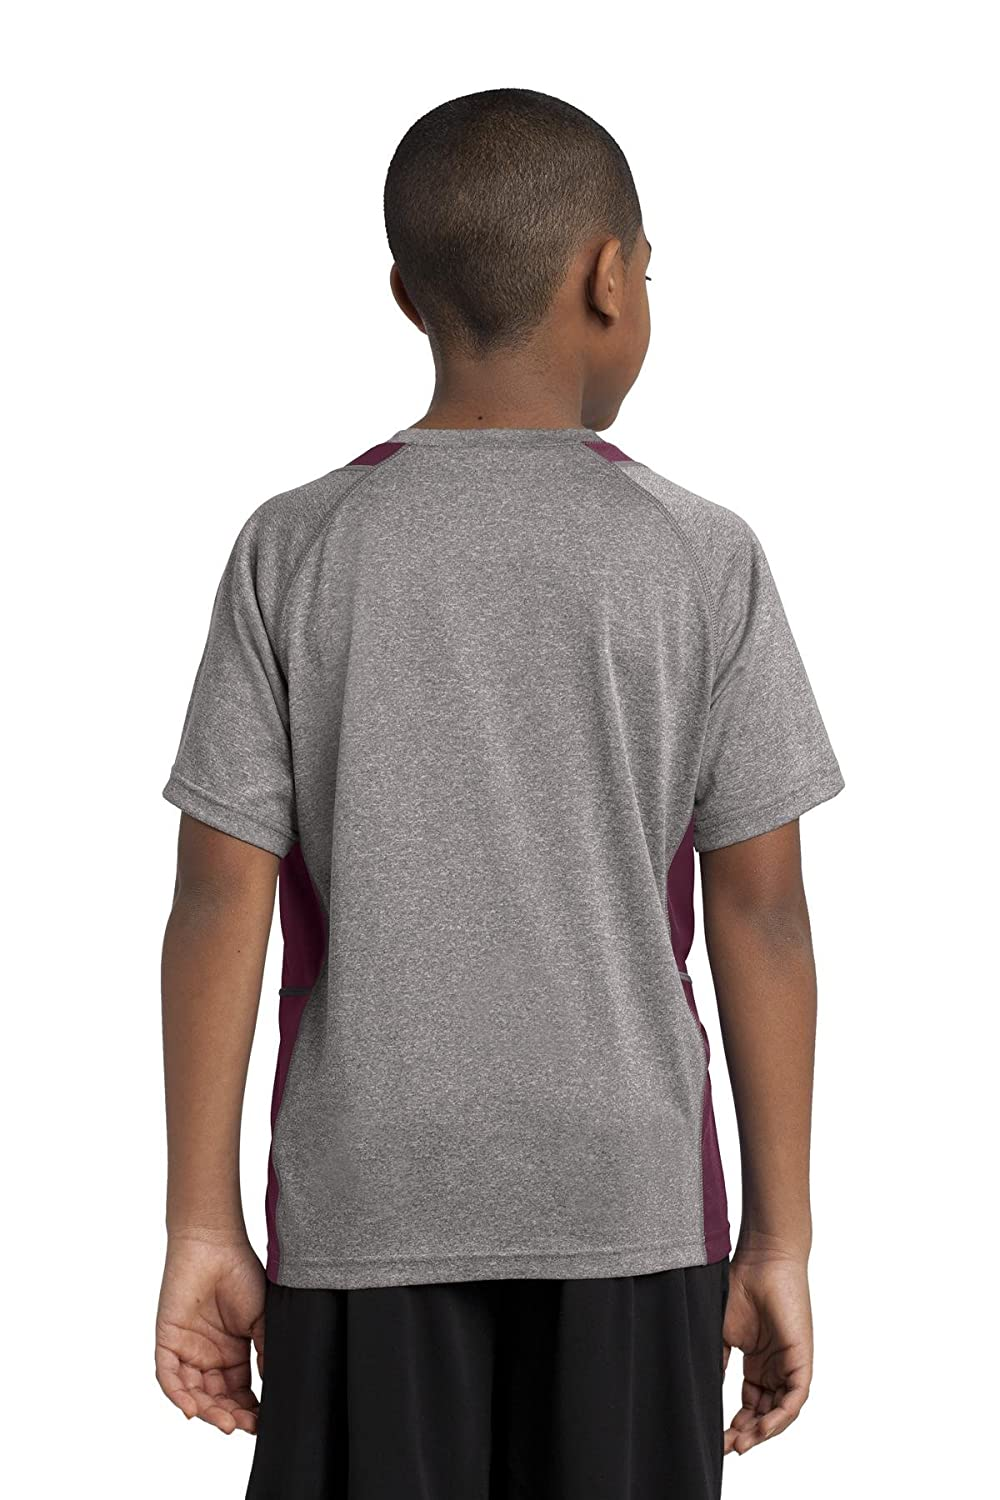 Vintage Heather// Maroon YST361 M Sport-Tek Boys Heather Colorblock Contender Tee